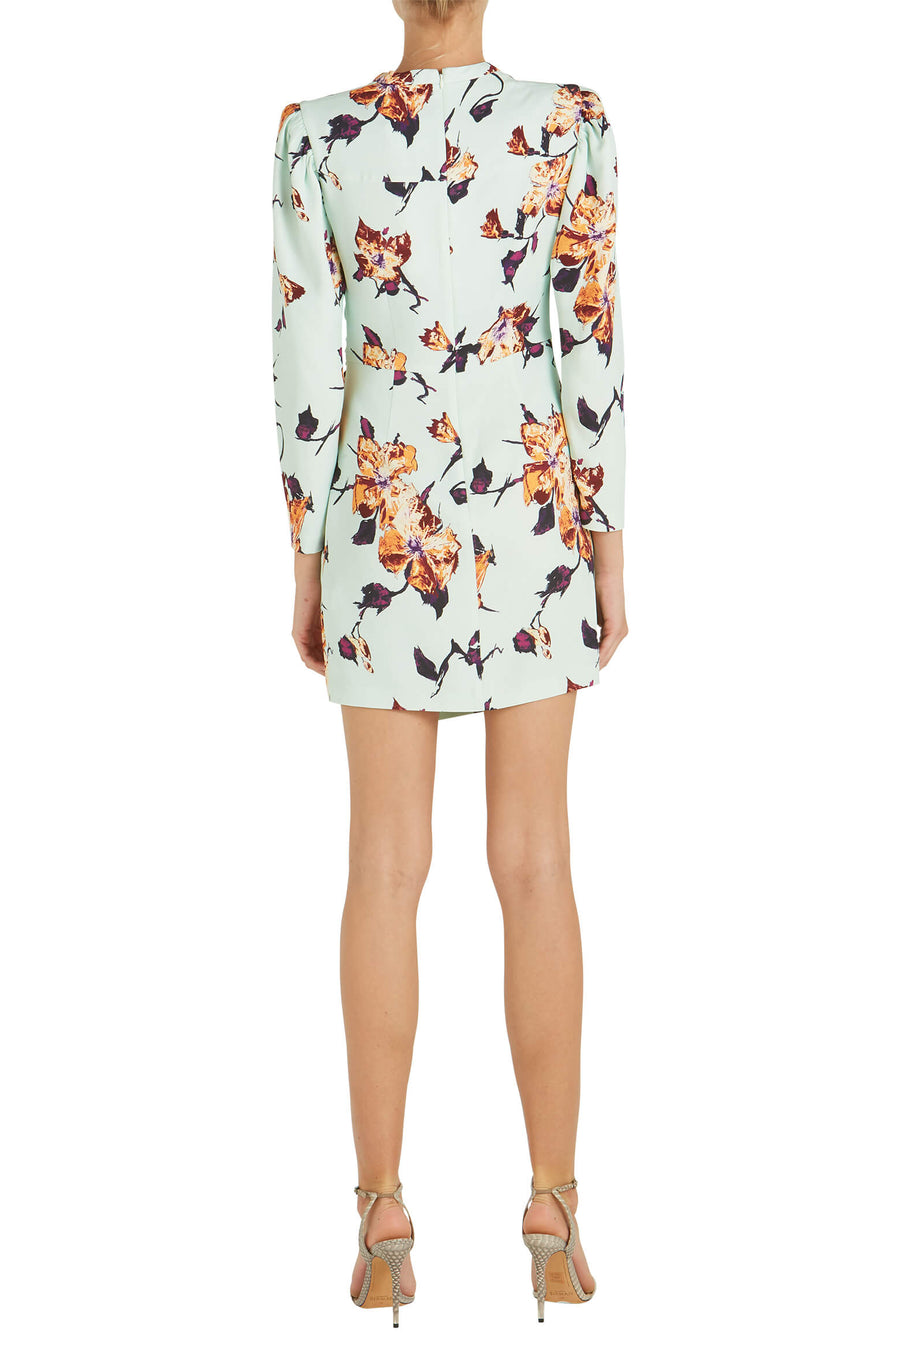 A.L.C Jane Printed Dress from The New Trend